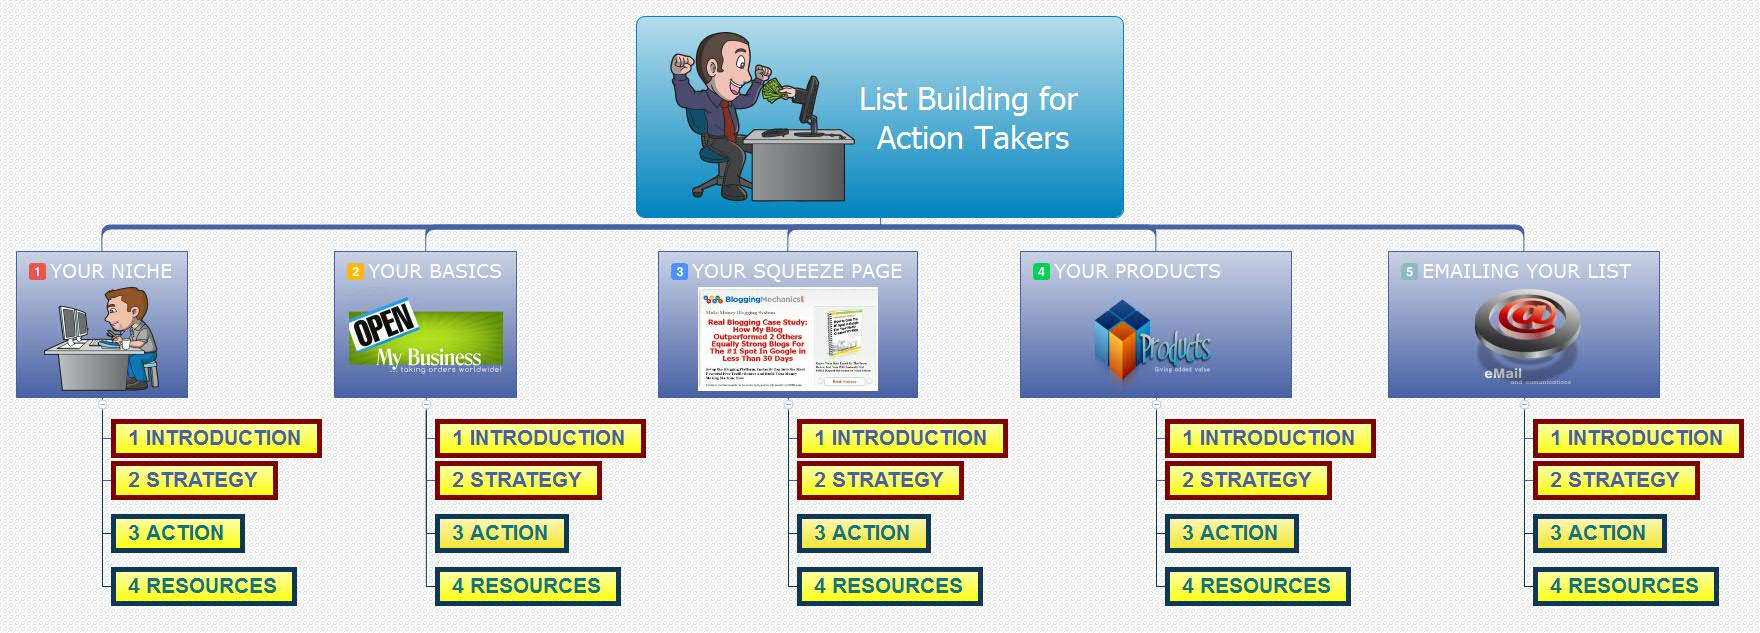 List Building For Action Takers